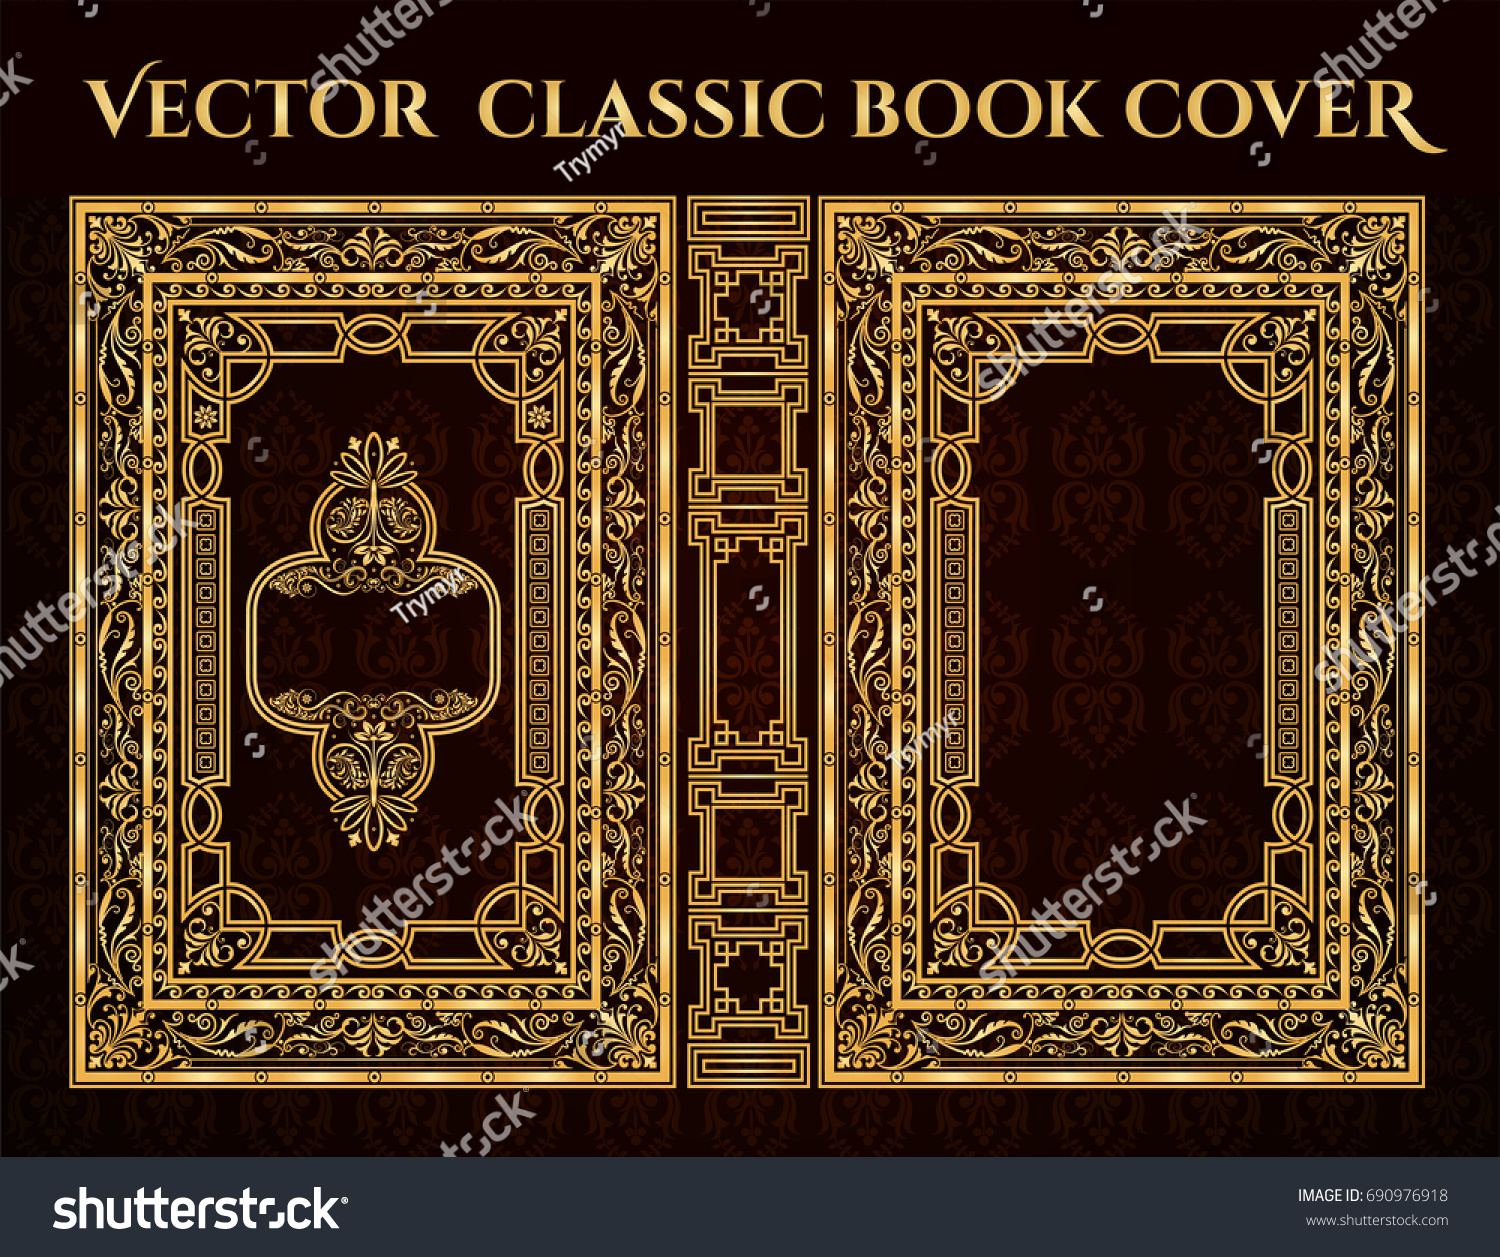 Poetry Book Cover Vector : Vector classical book cover decorative vintage stock